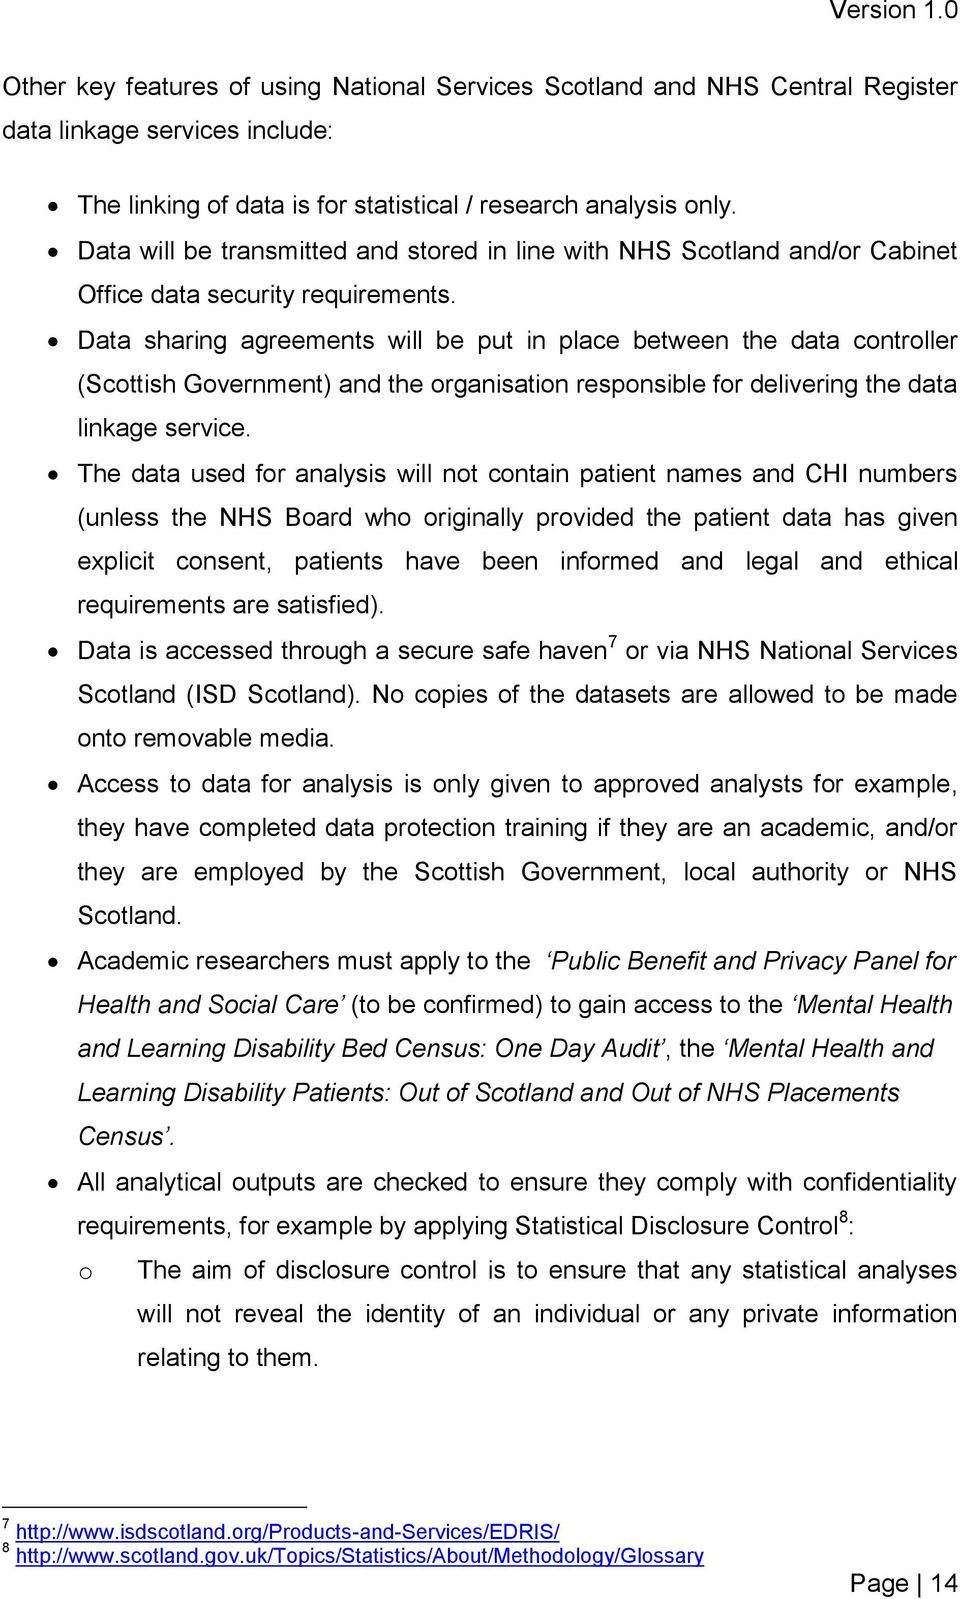 Data sharing agreements will be put in place between the data controller (Scottish Government) and the organisation responsible for delivering the data linkage service.